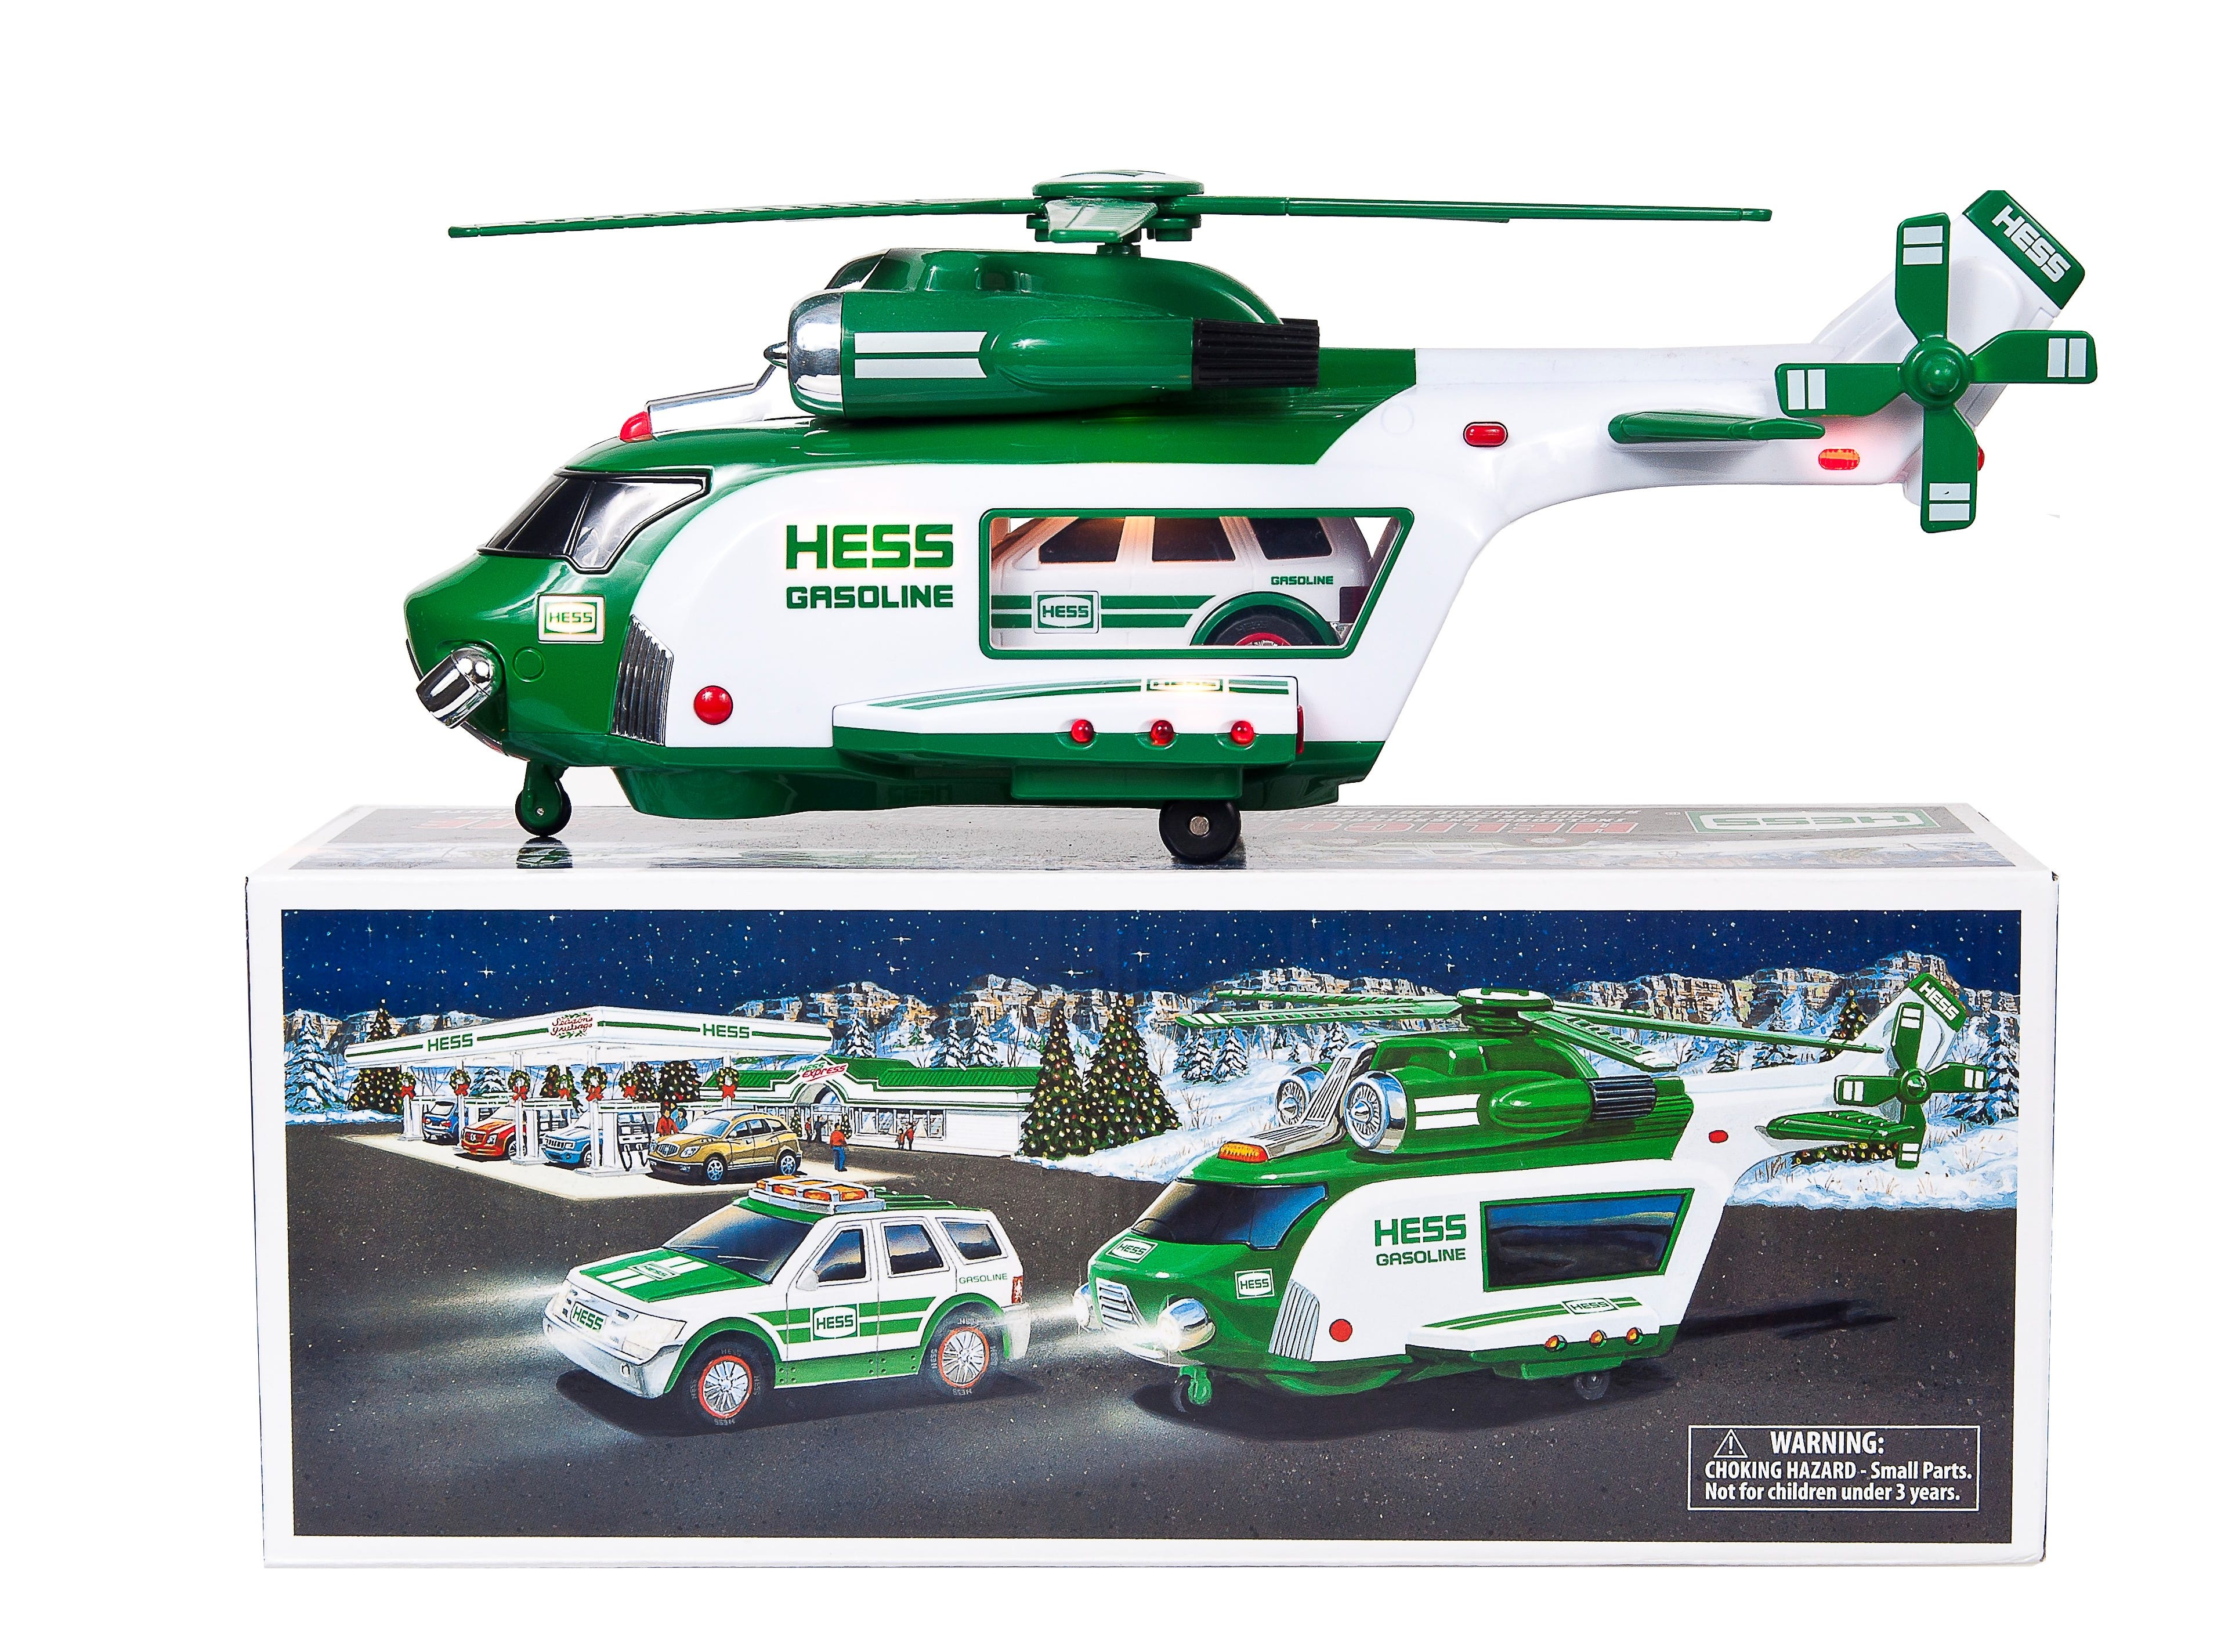 The 2012 Hess toy truck.